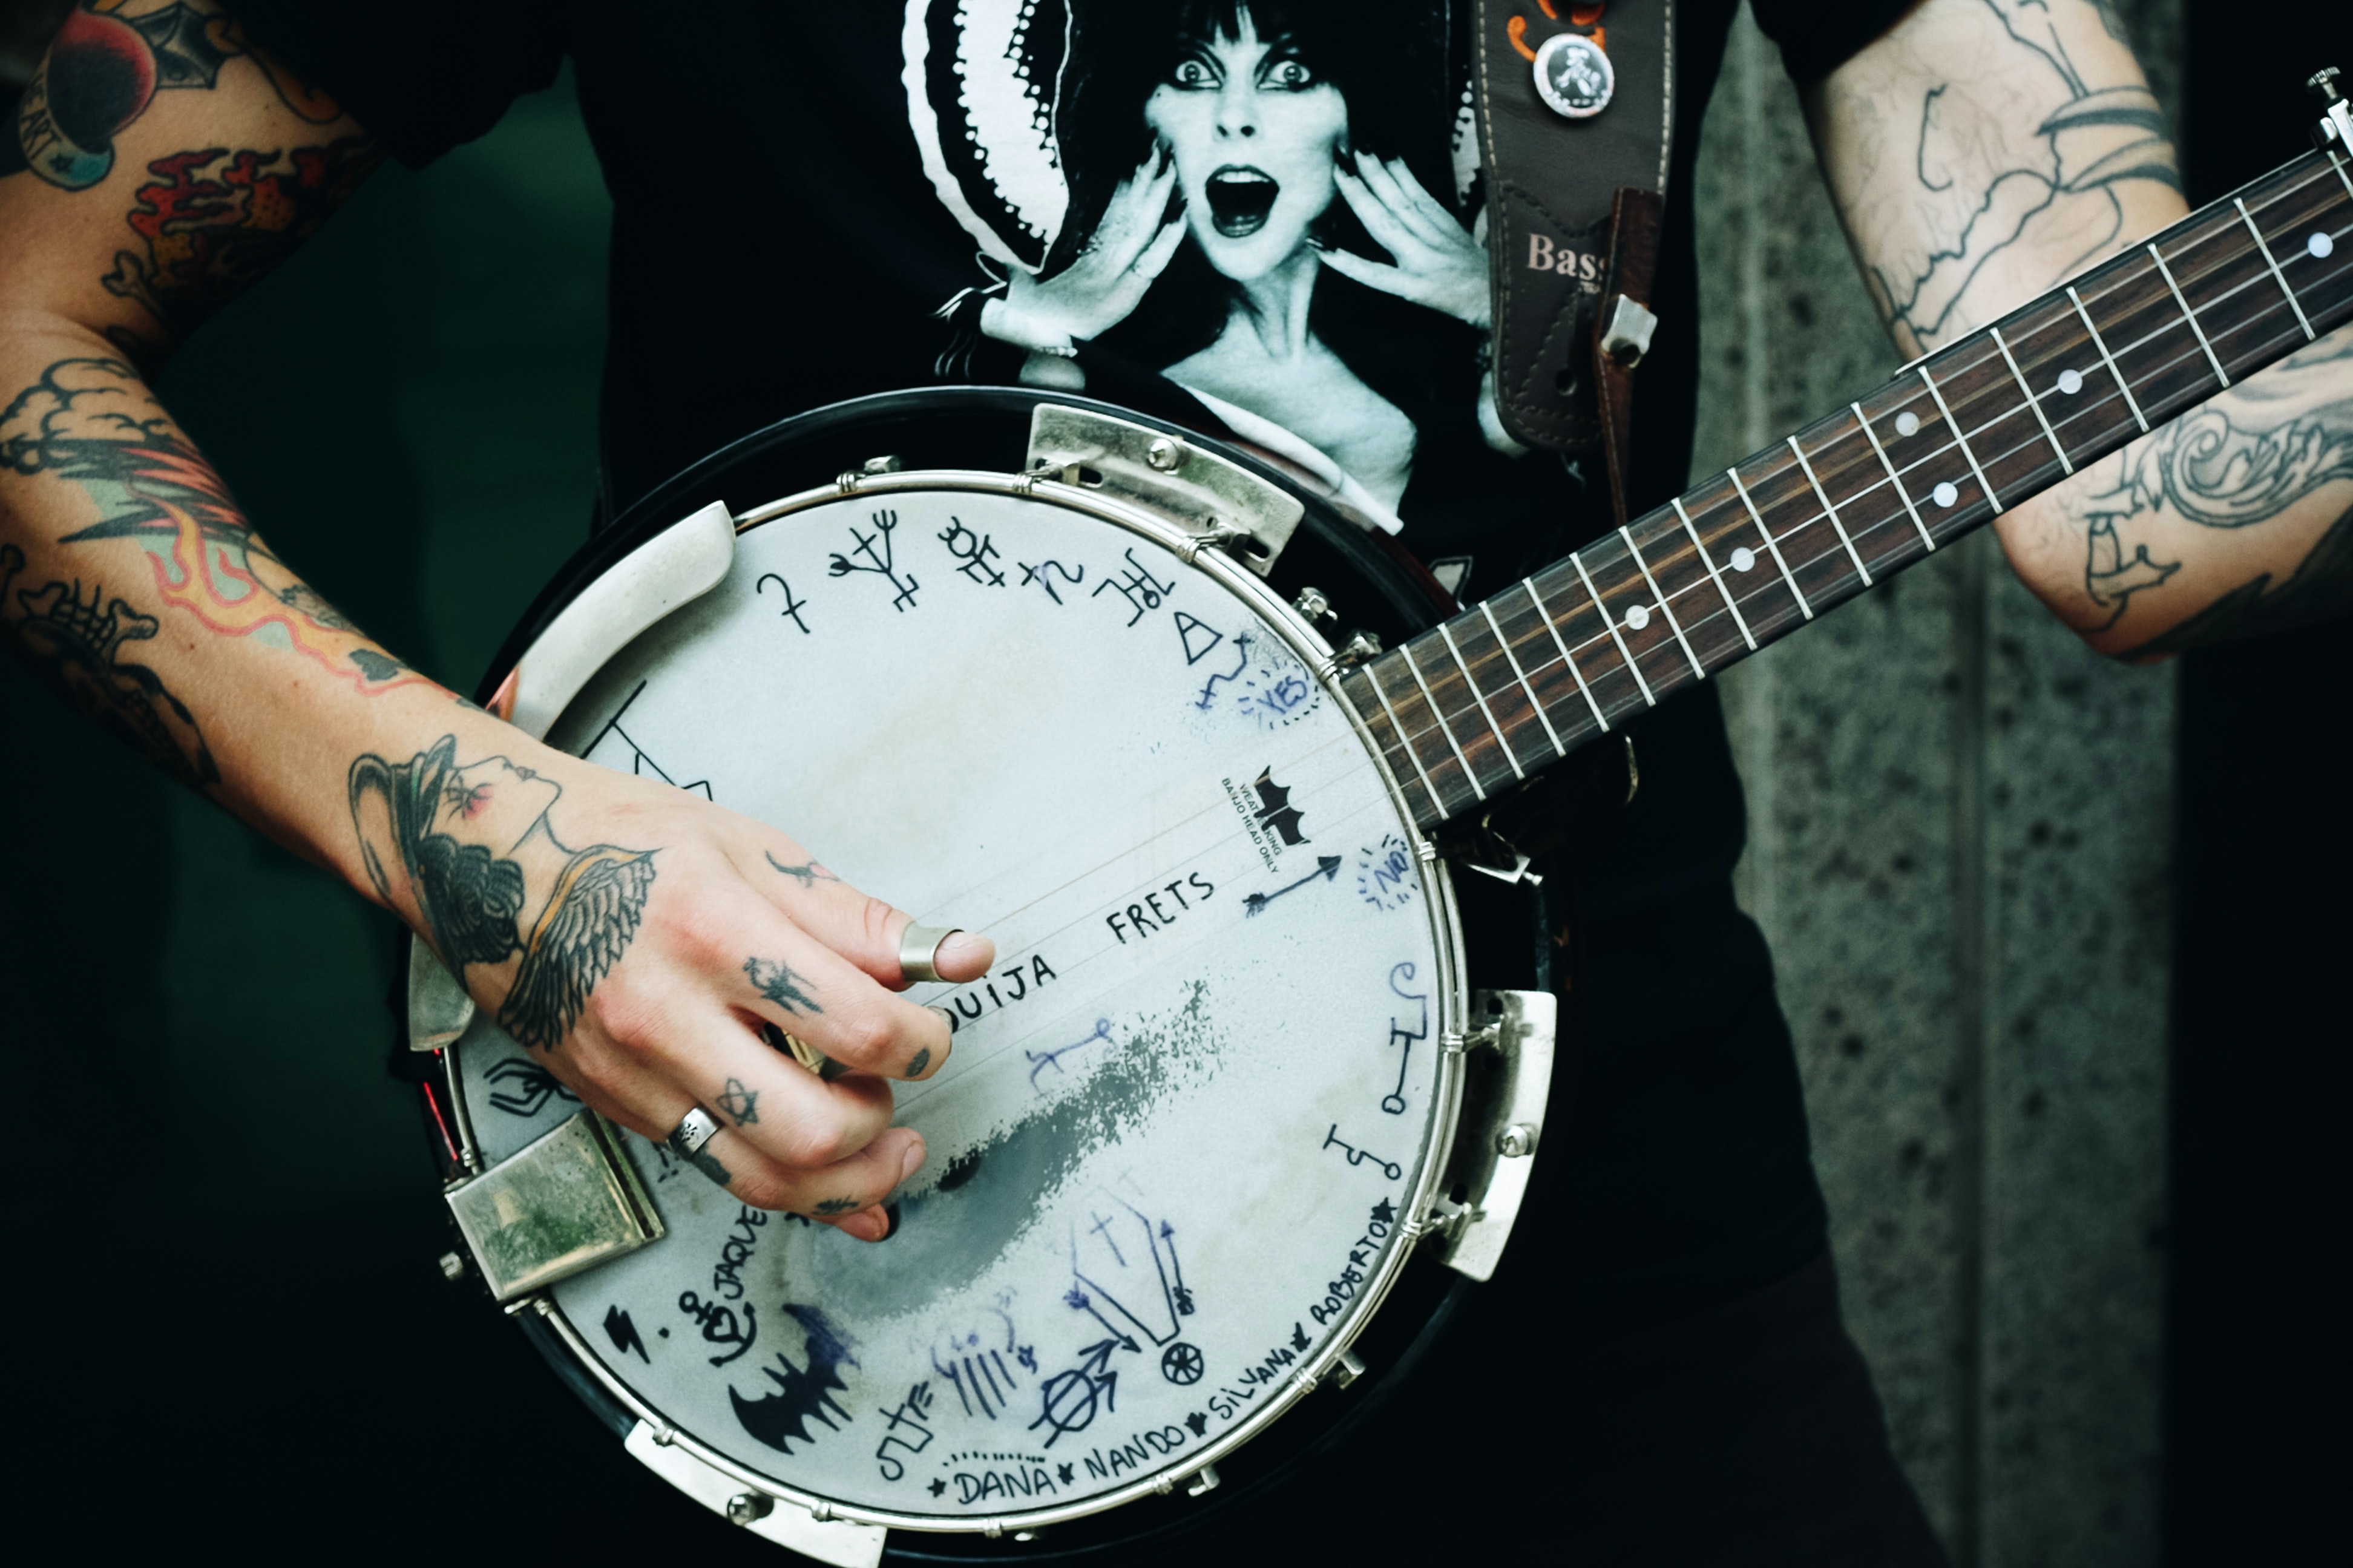 A musician playing the banjo with playful doodles on its white head